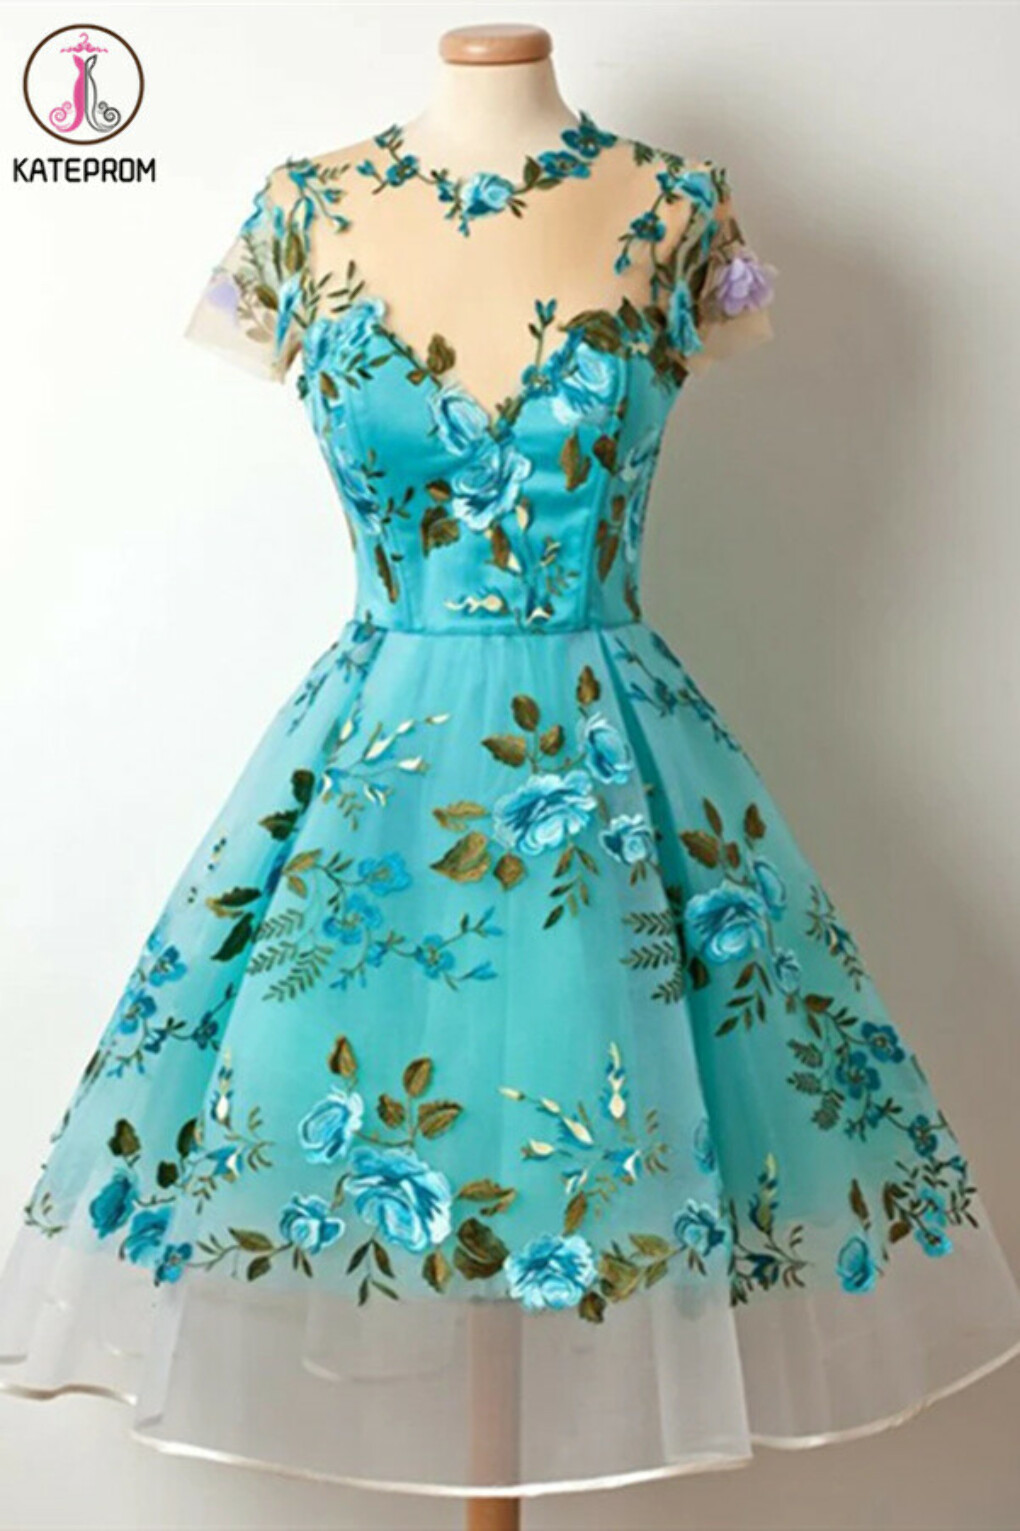 Kateprom Lace Homecoming Dresses Scoop A Line Floral Short Prom Dress Cute Party Dress KPP1338